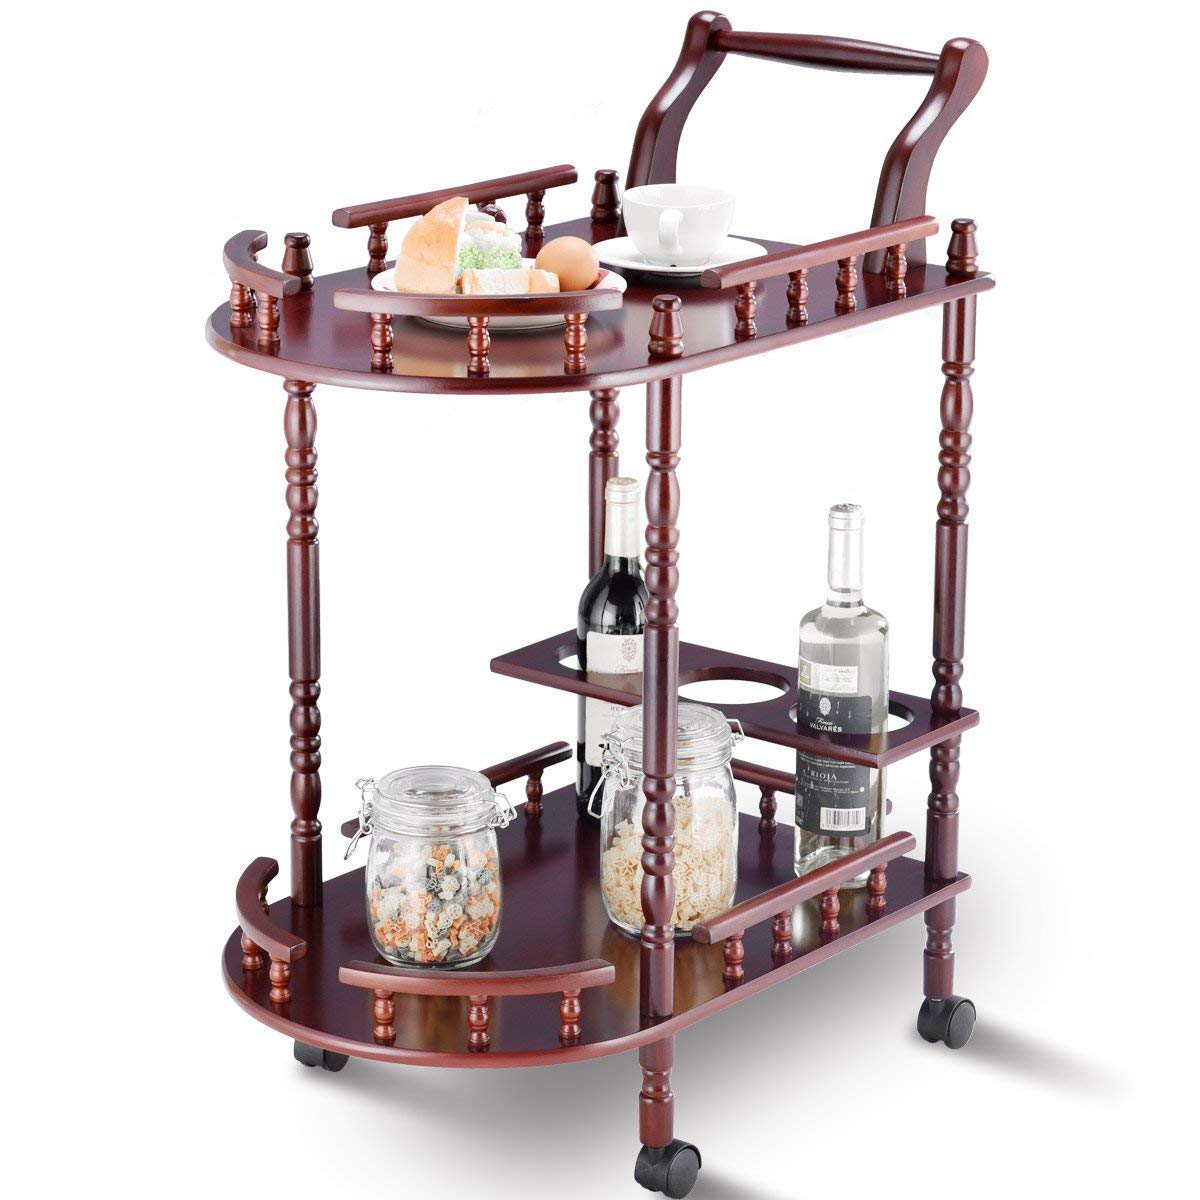 Serving Cart Kitchen Trolley Island Cart Solid Wood Home Commercial 2-Tier Rolling Island Cart w/Wheels Handle Bottle Holder Guard Rails Cherry